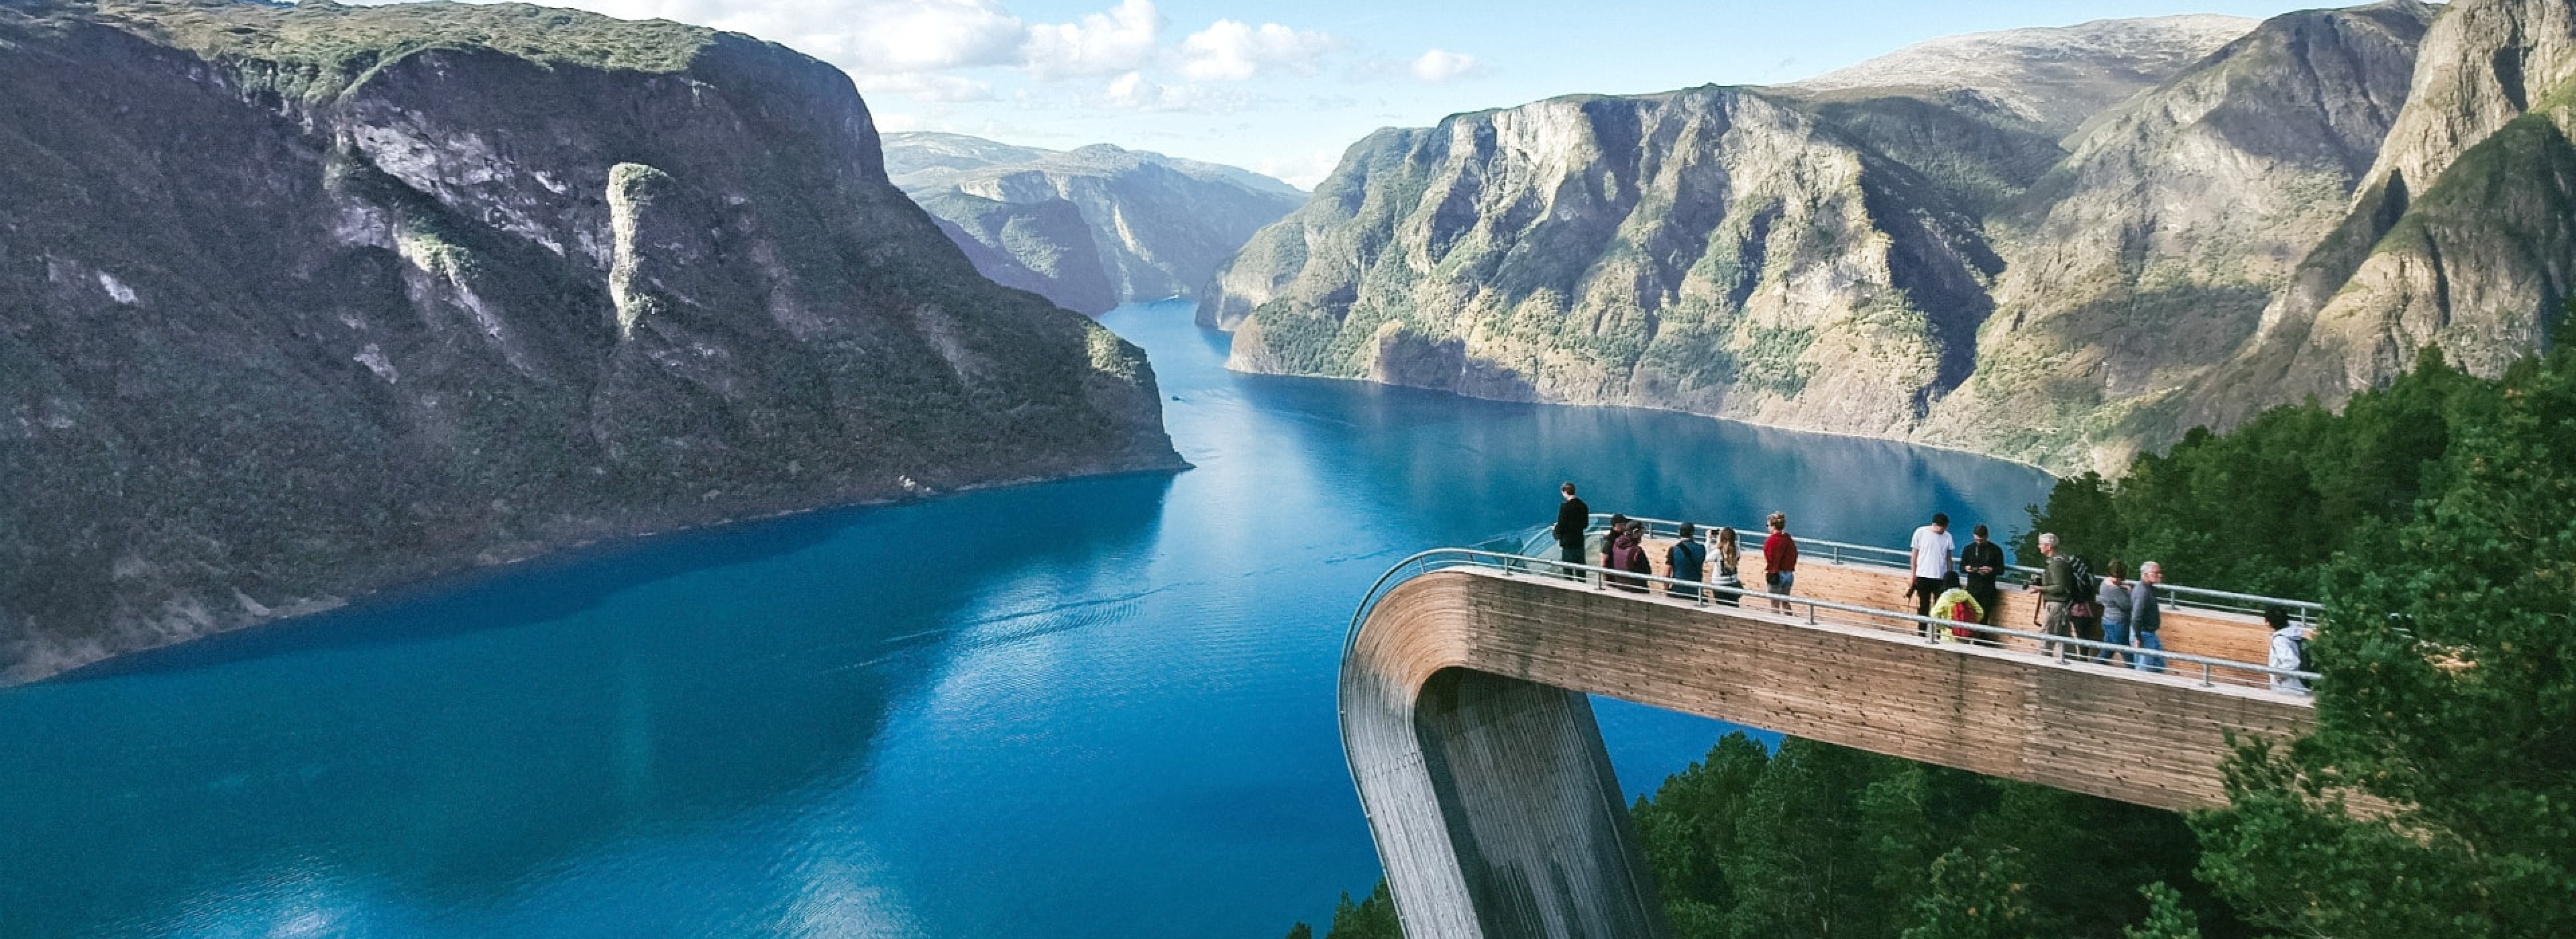 Aurland Viewpoint Near Flam, Norway